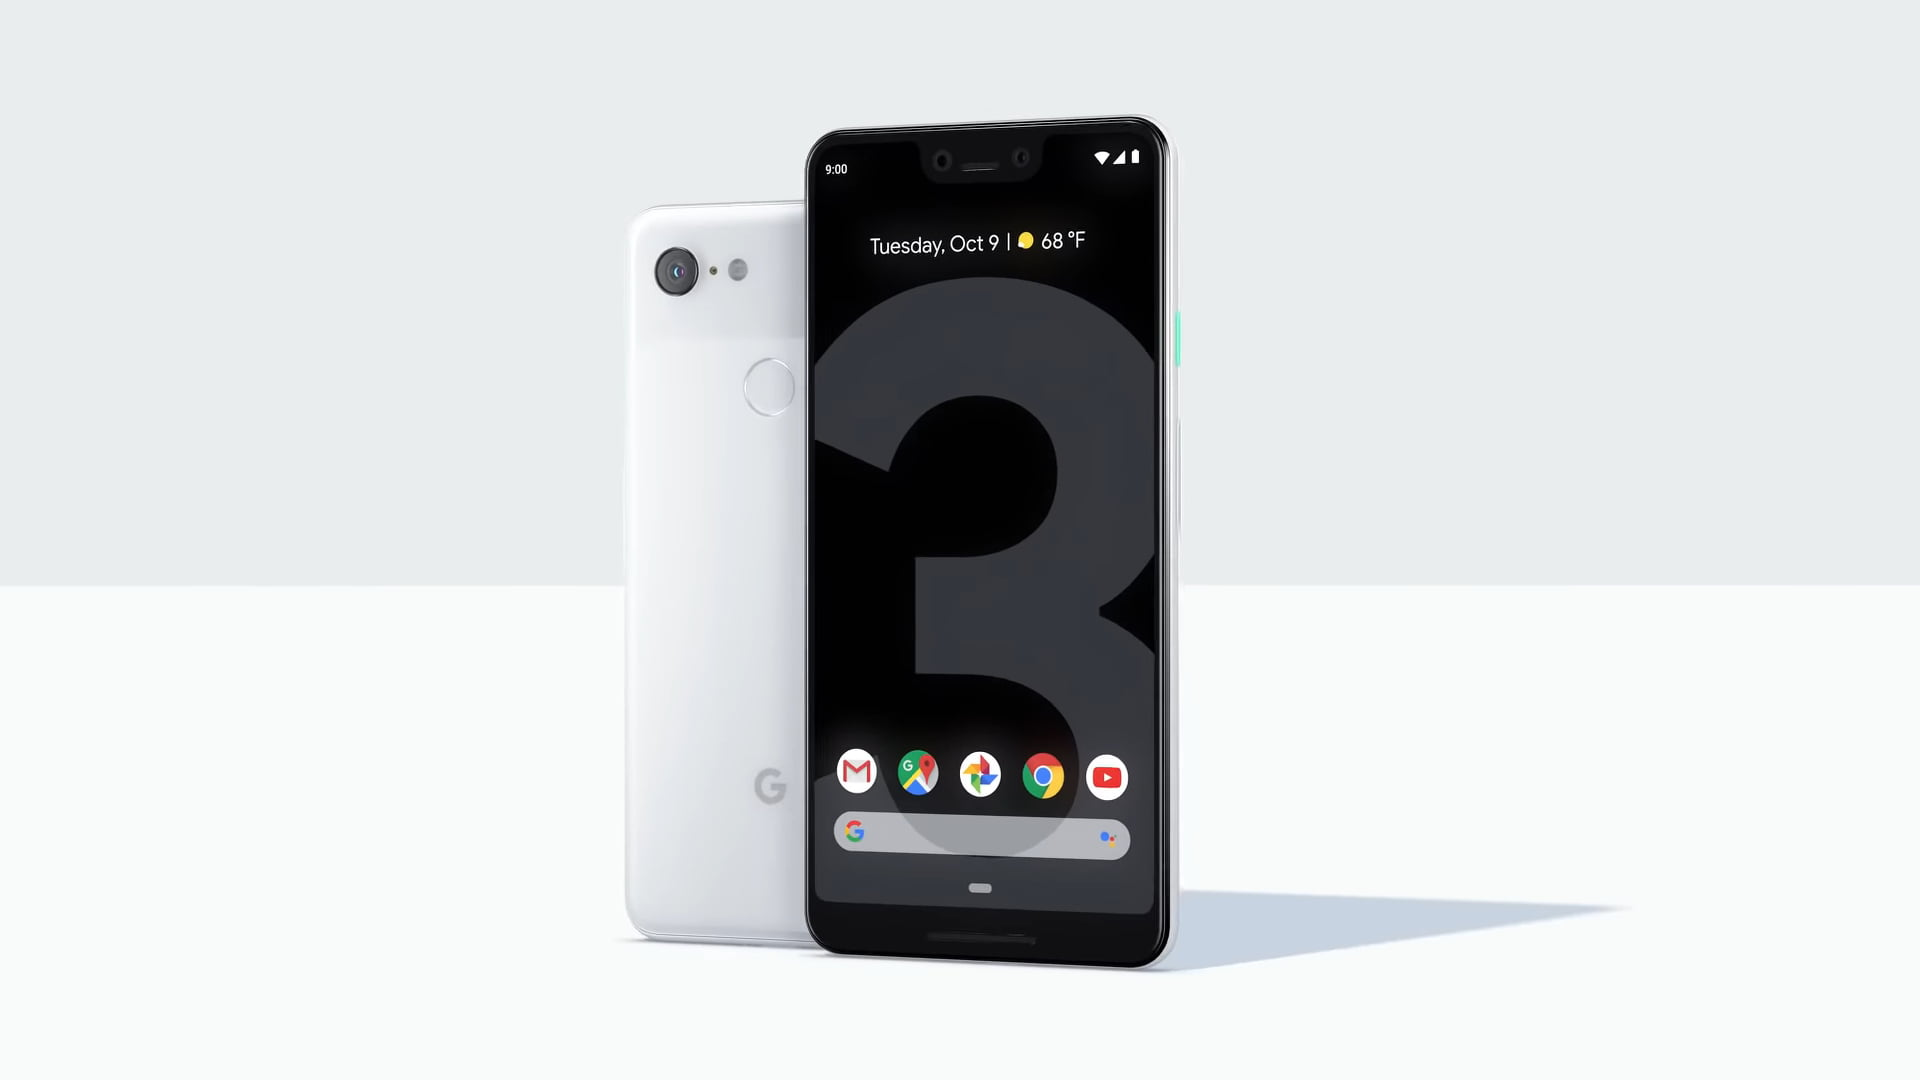 Google discontinues Pixel 3 and Pixel 3 XL